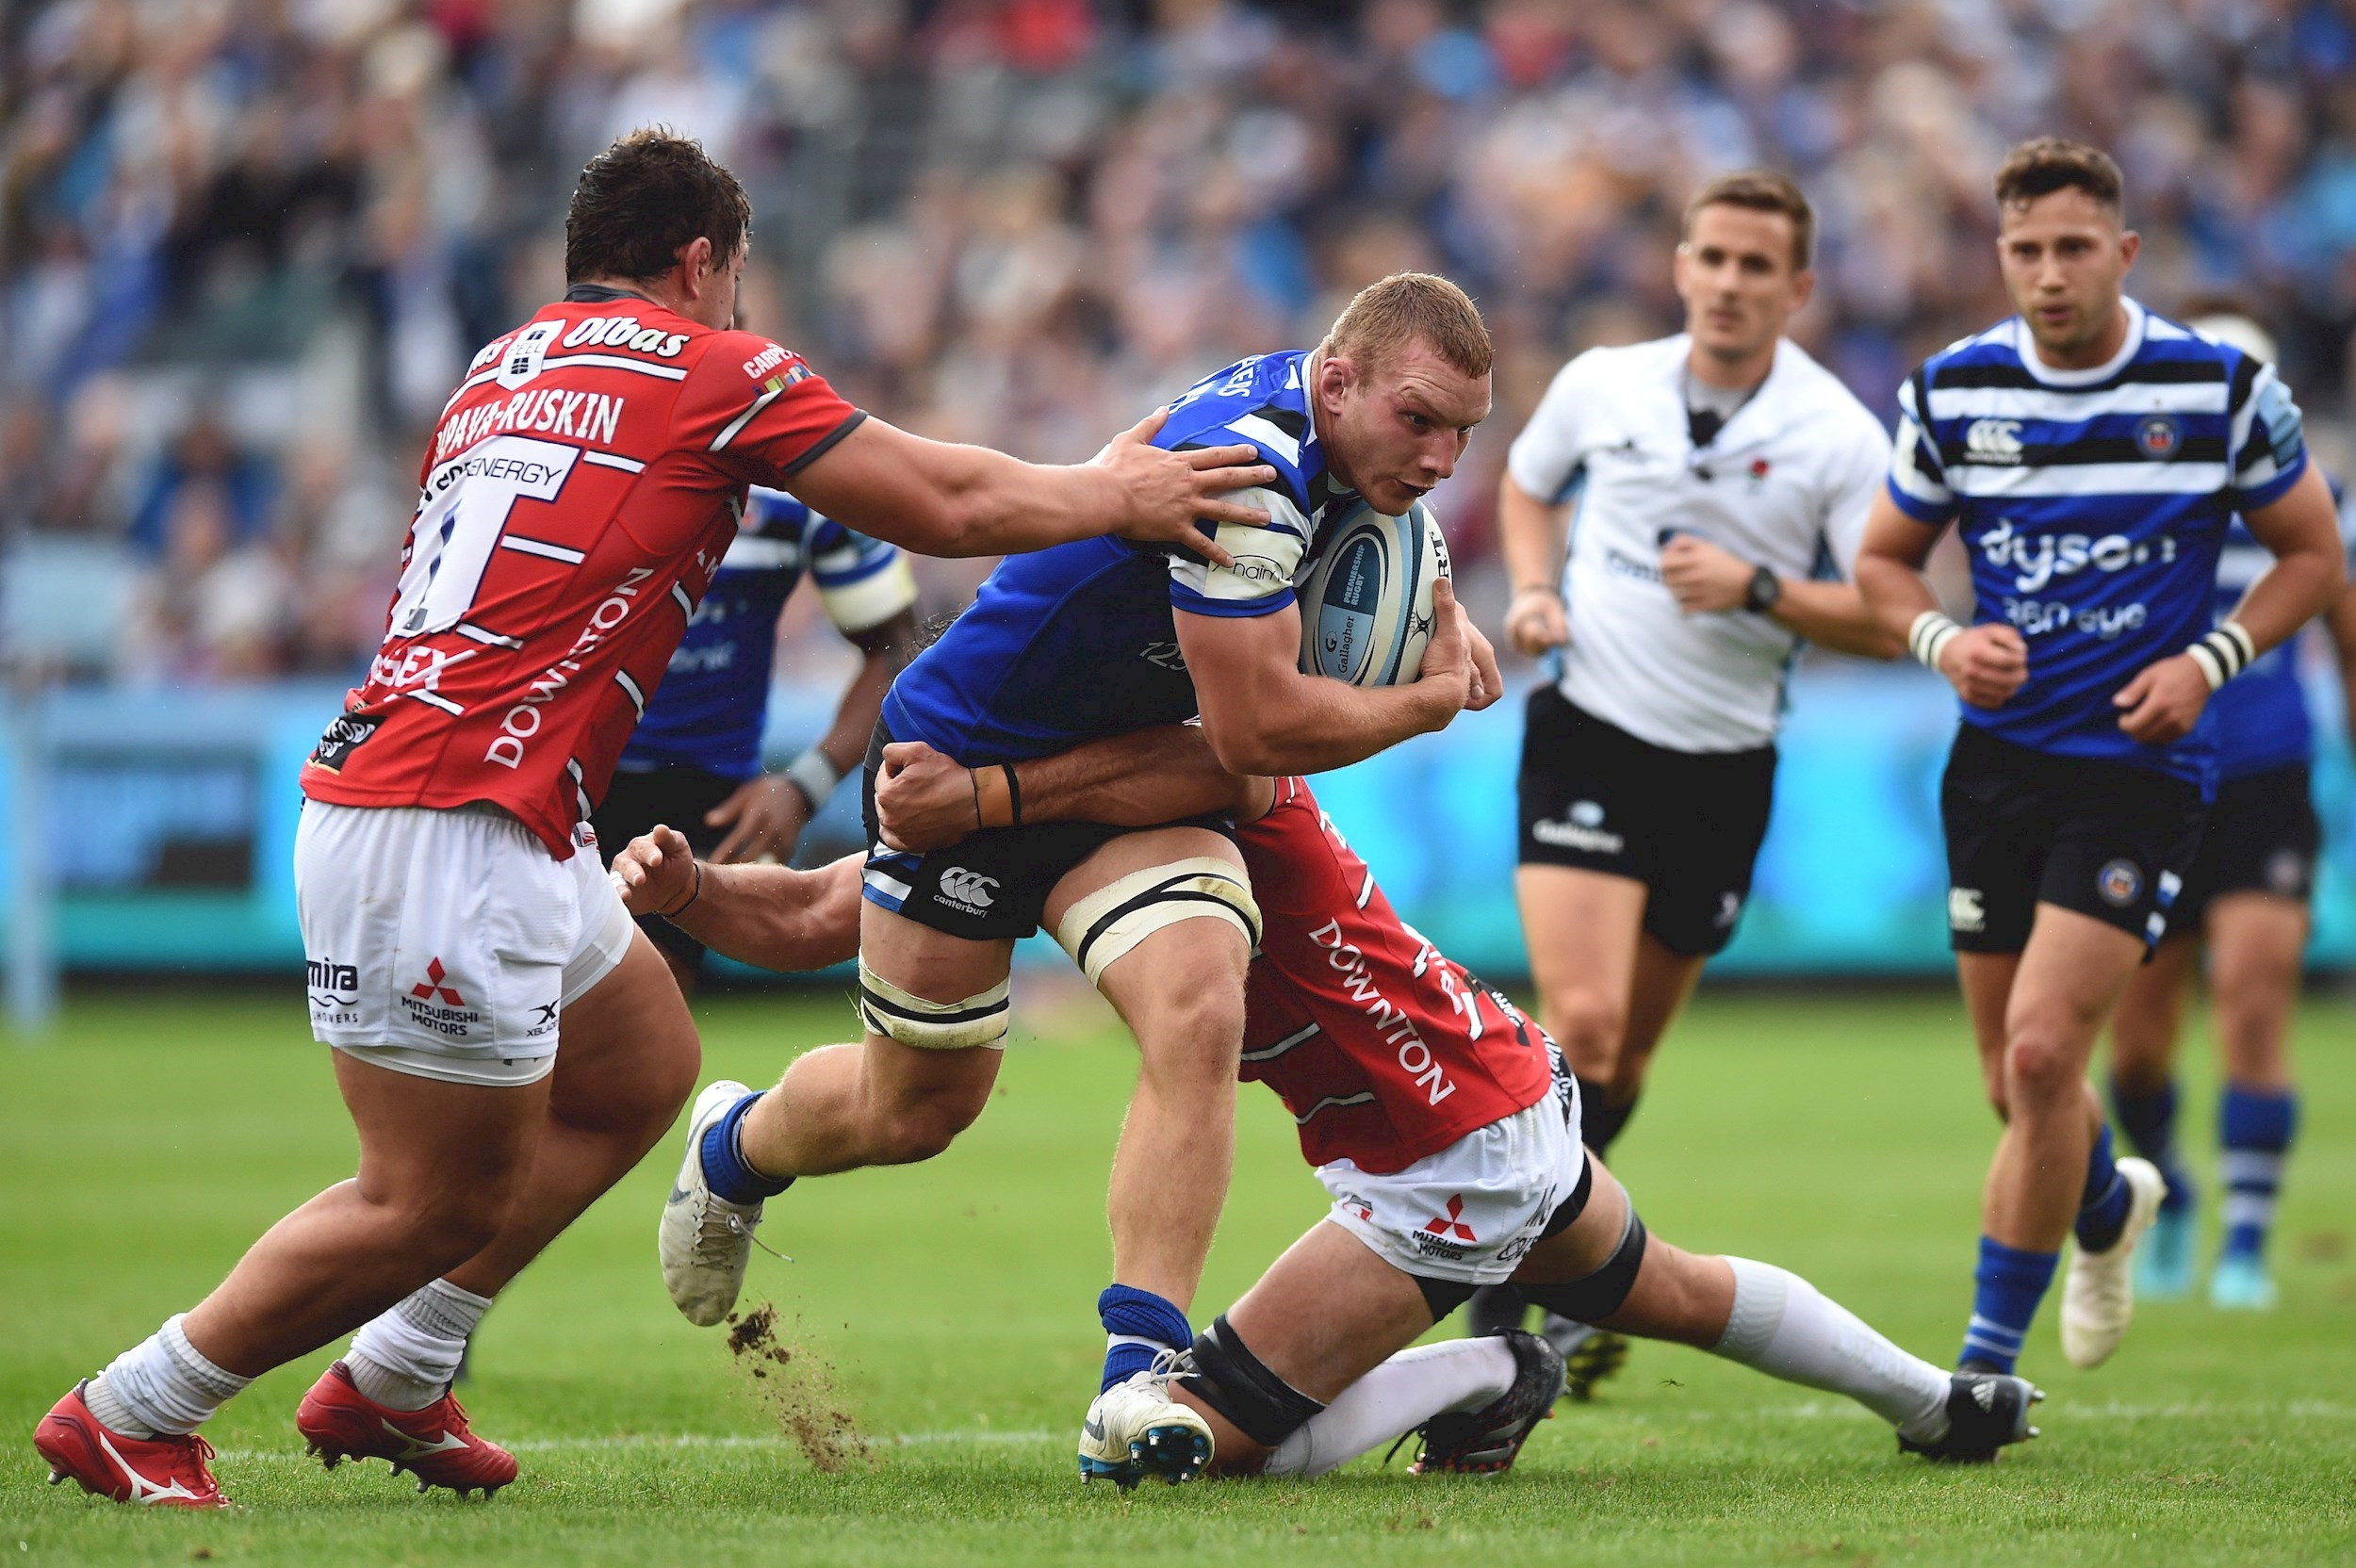 Bath fight back to claim draw with Gloucester